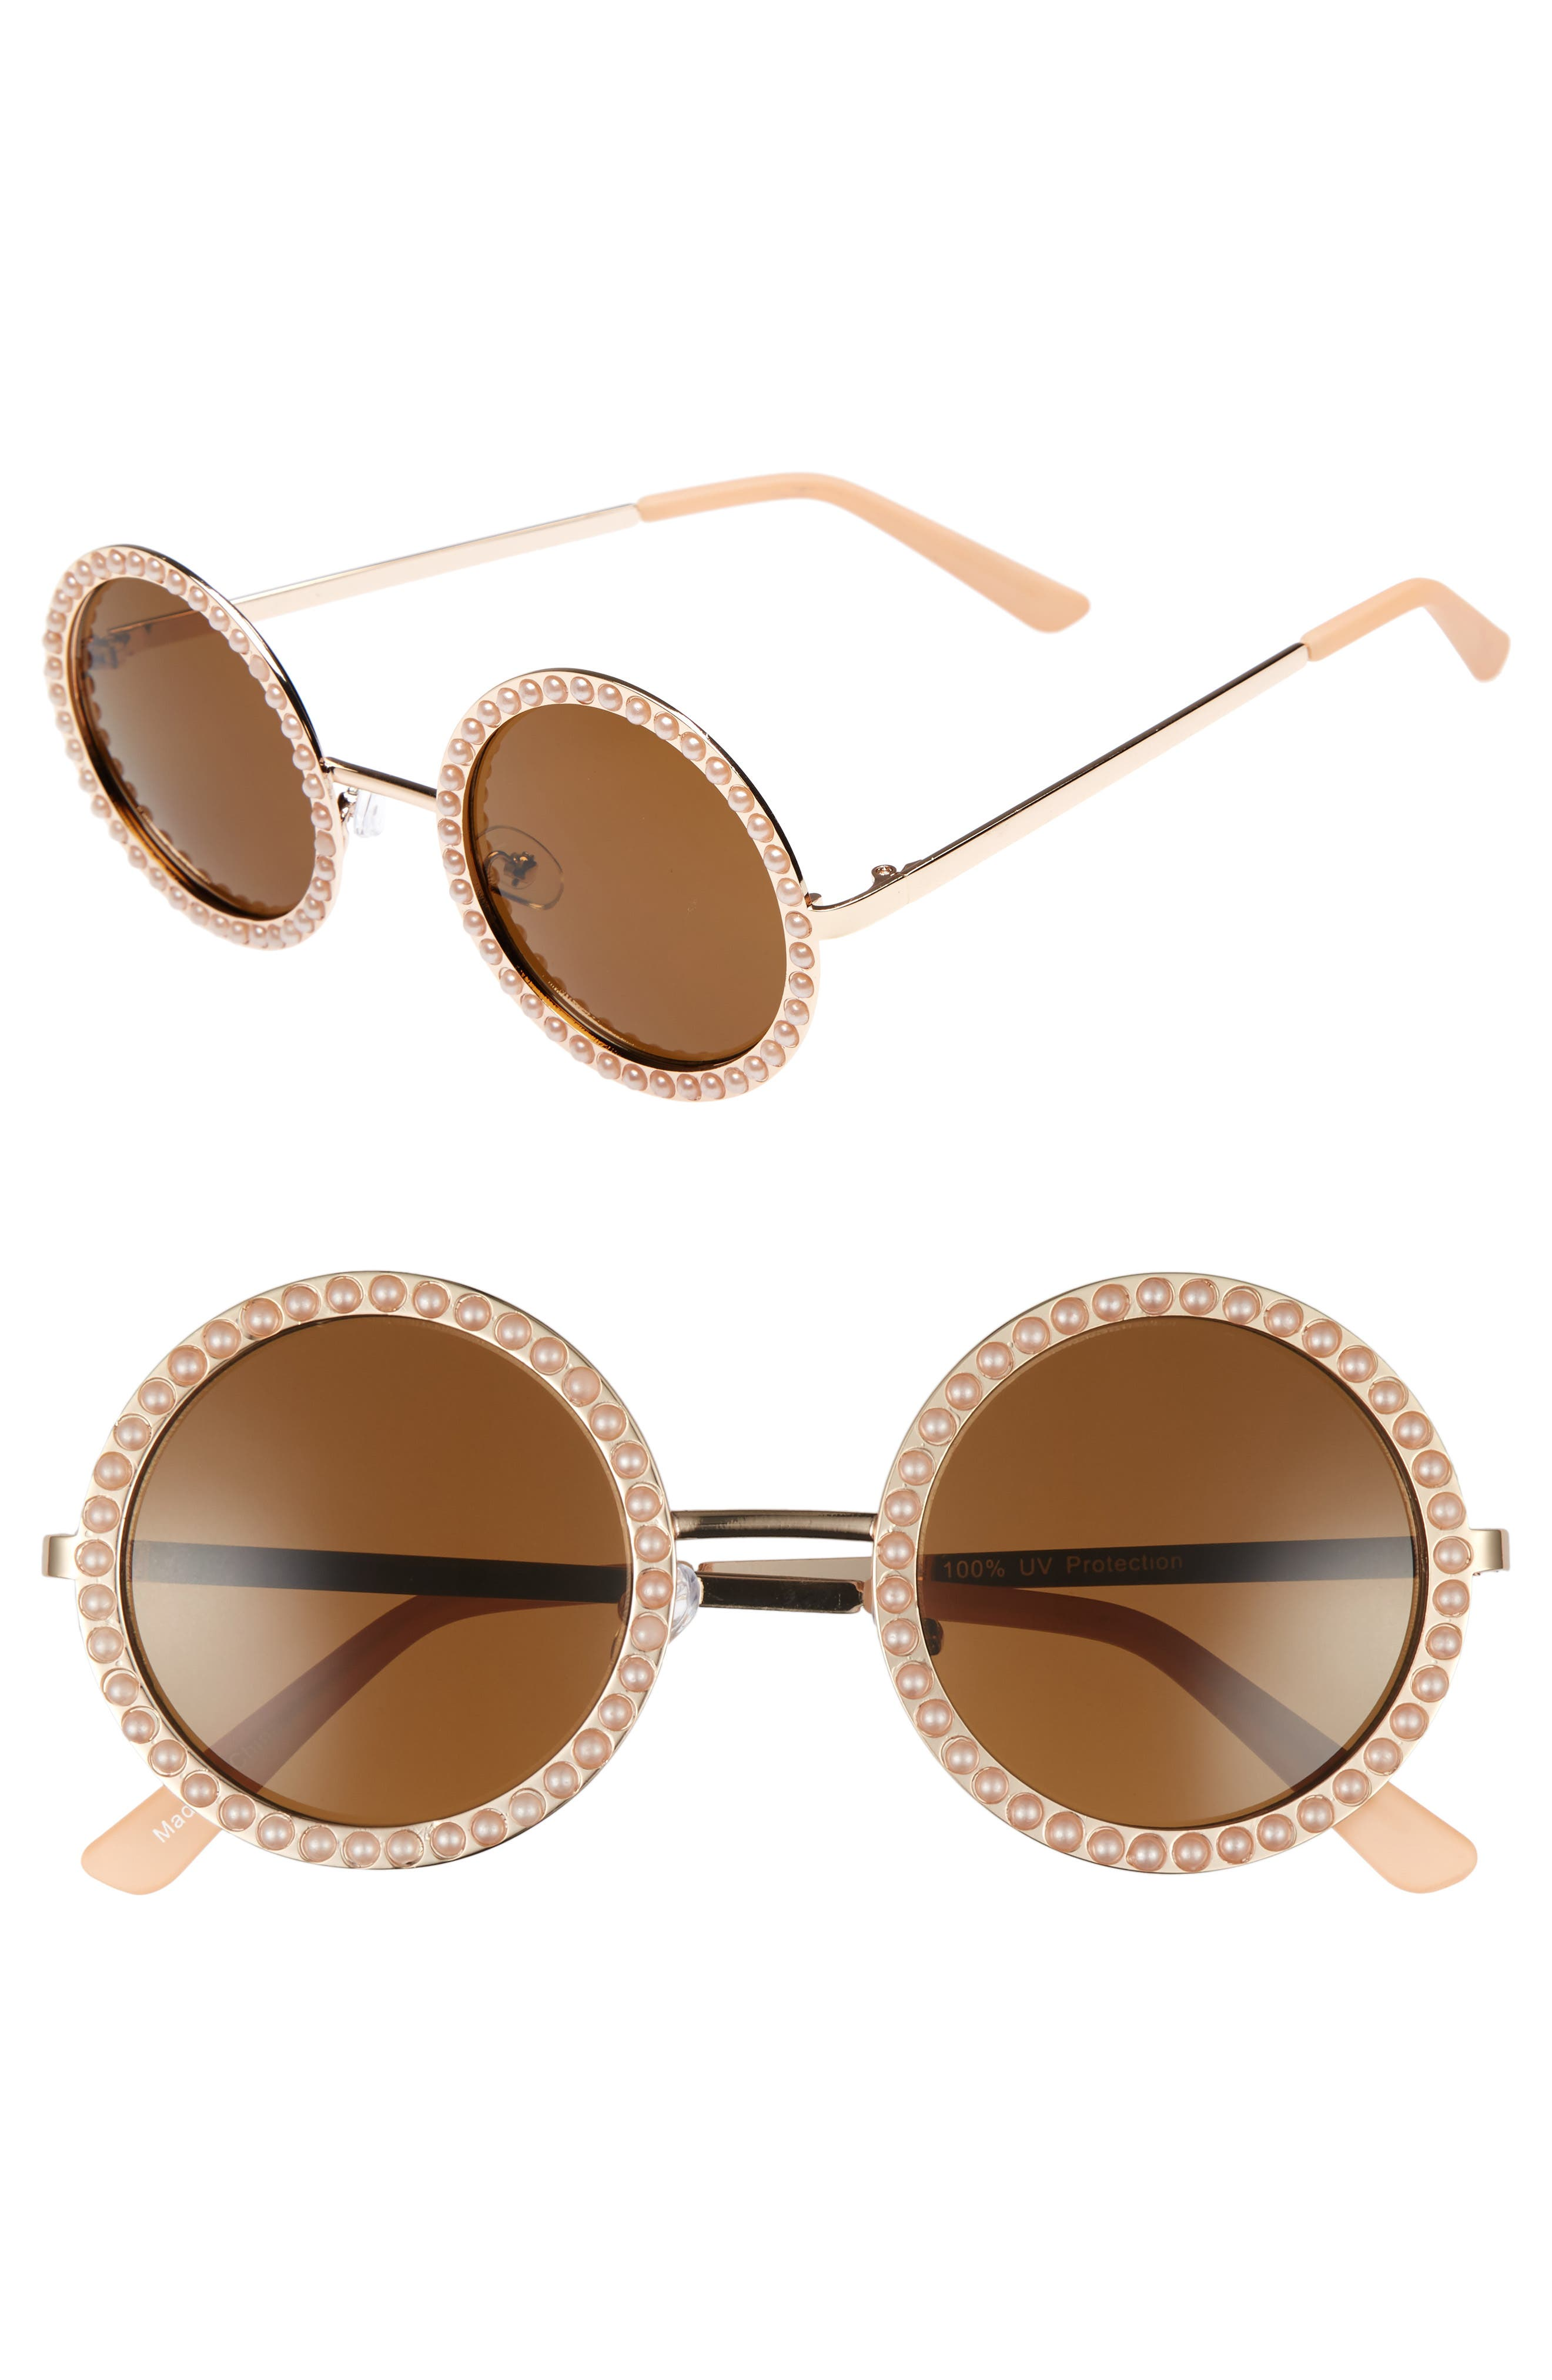 Alternate Image 1 Selected - BP. 55mm Imitation Pearl Round Sunglasses